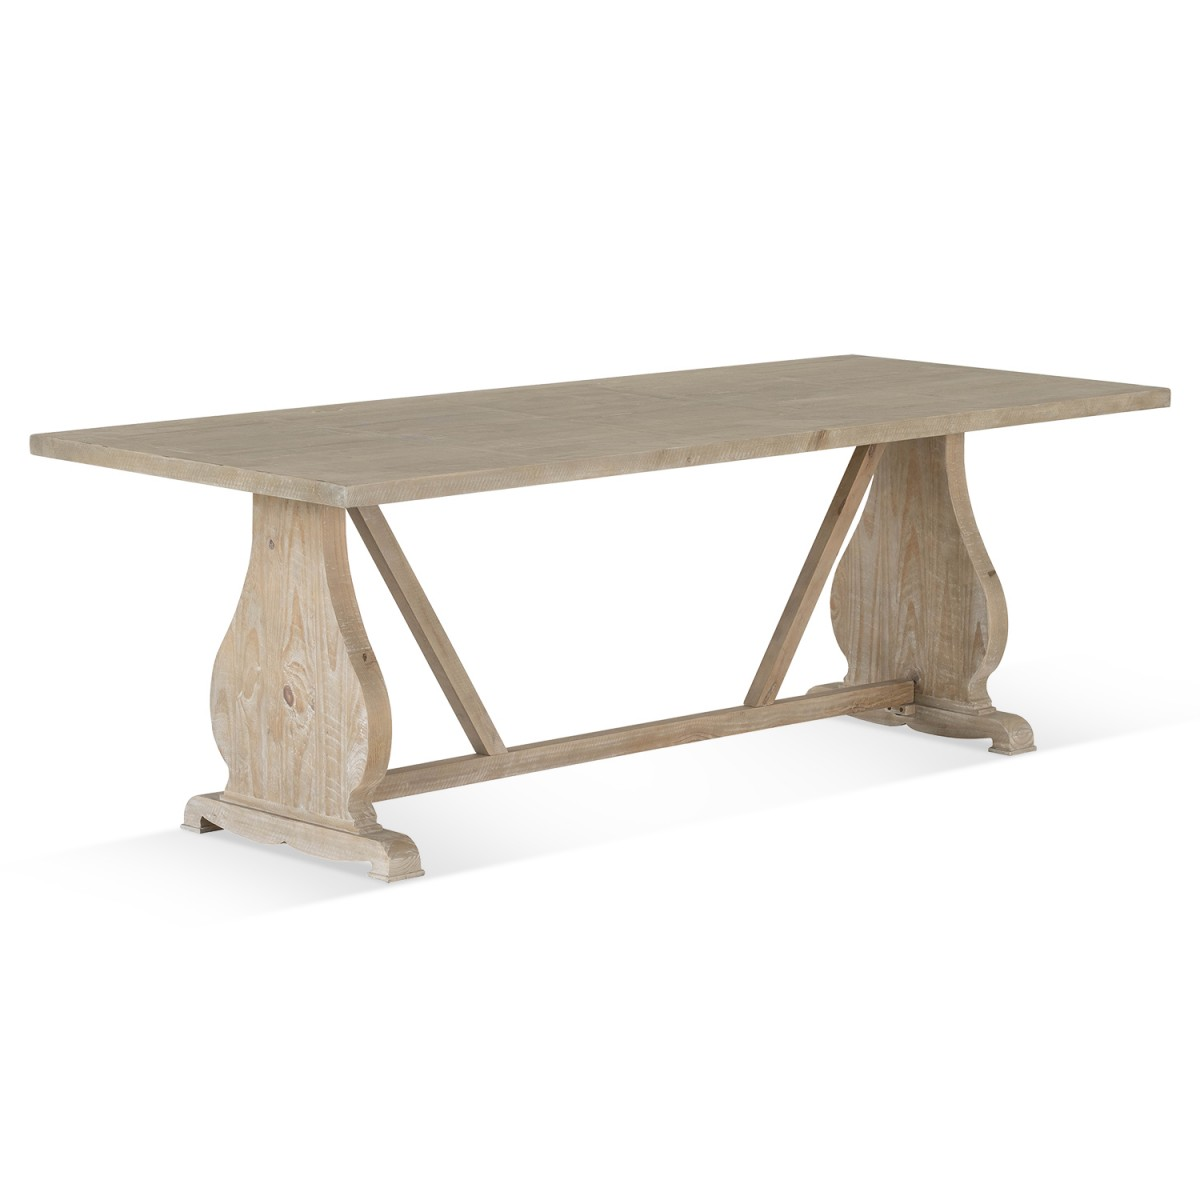 Table à manger Bois Marron 230x100x76cm